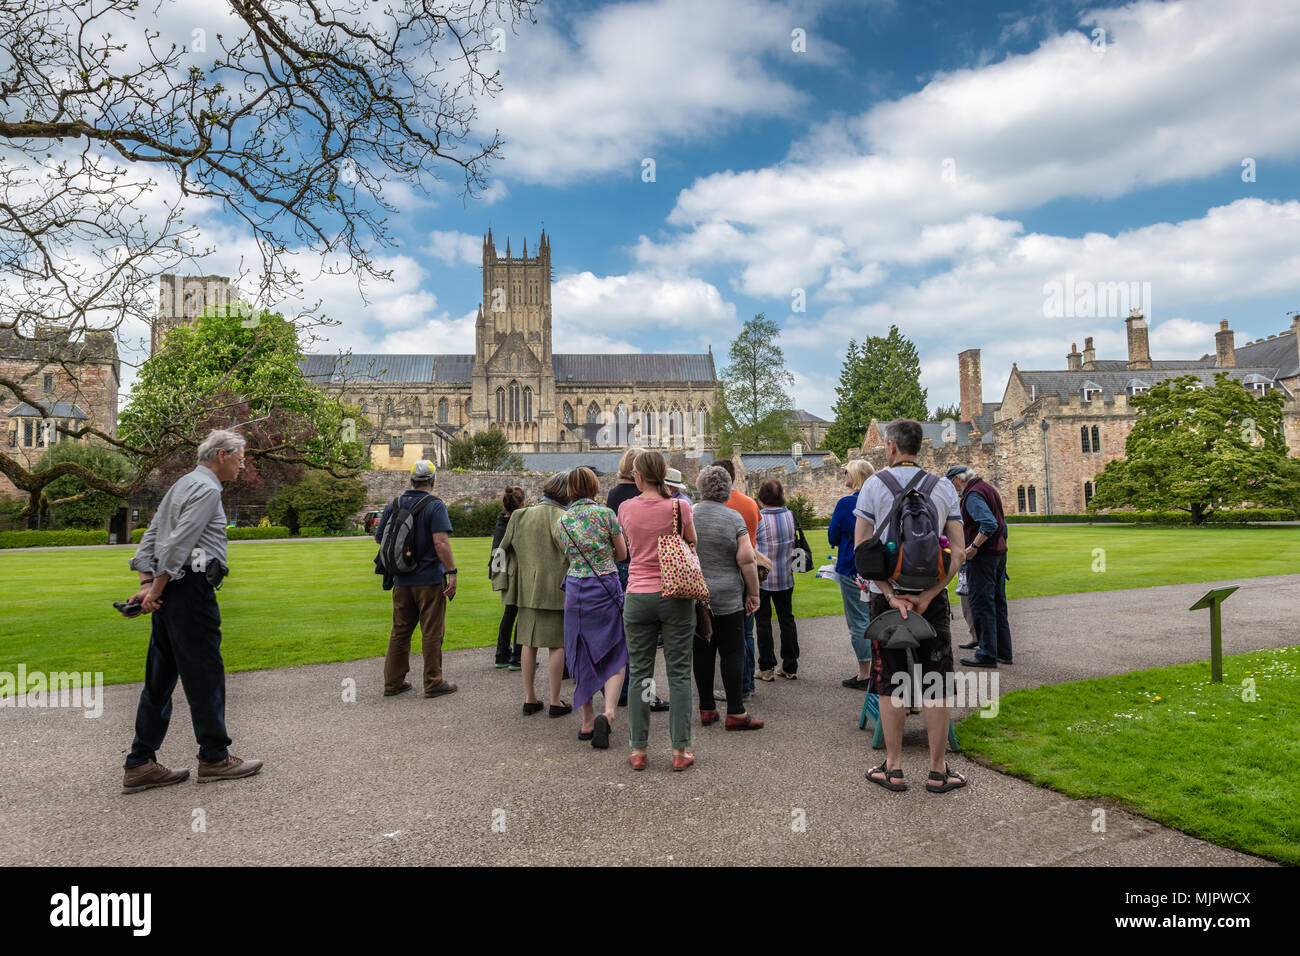 Somerset, UK, 5 May 2018. UK Weather - On a beautiful sunny Bank Holiday Saturday in Somerset, a tour guide entertains a group of tourists to the Bishops Palace gardens in Wells. Credit: Terry Mathews/Alamy Live News - Stock Image